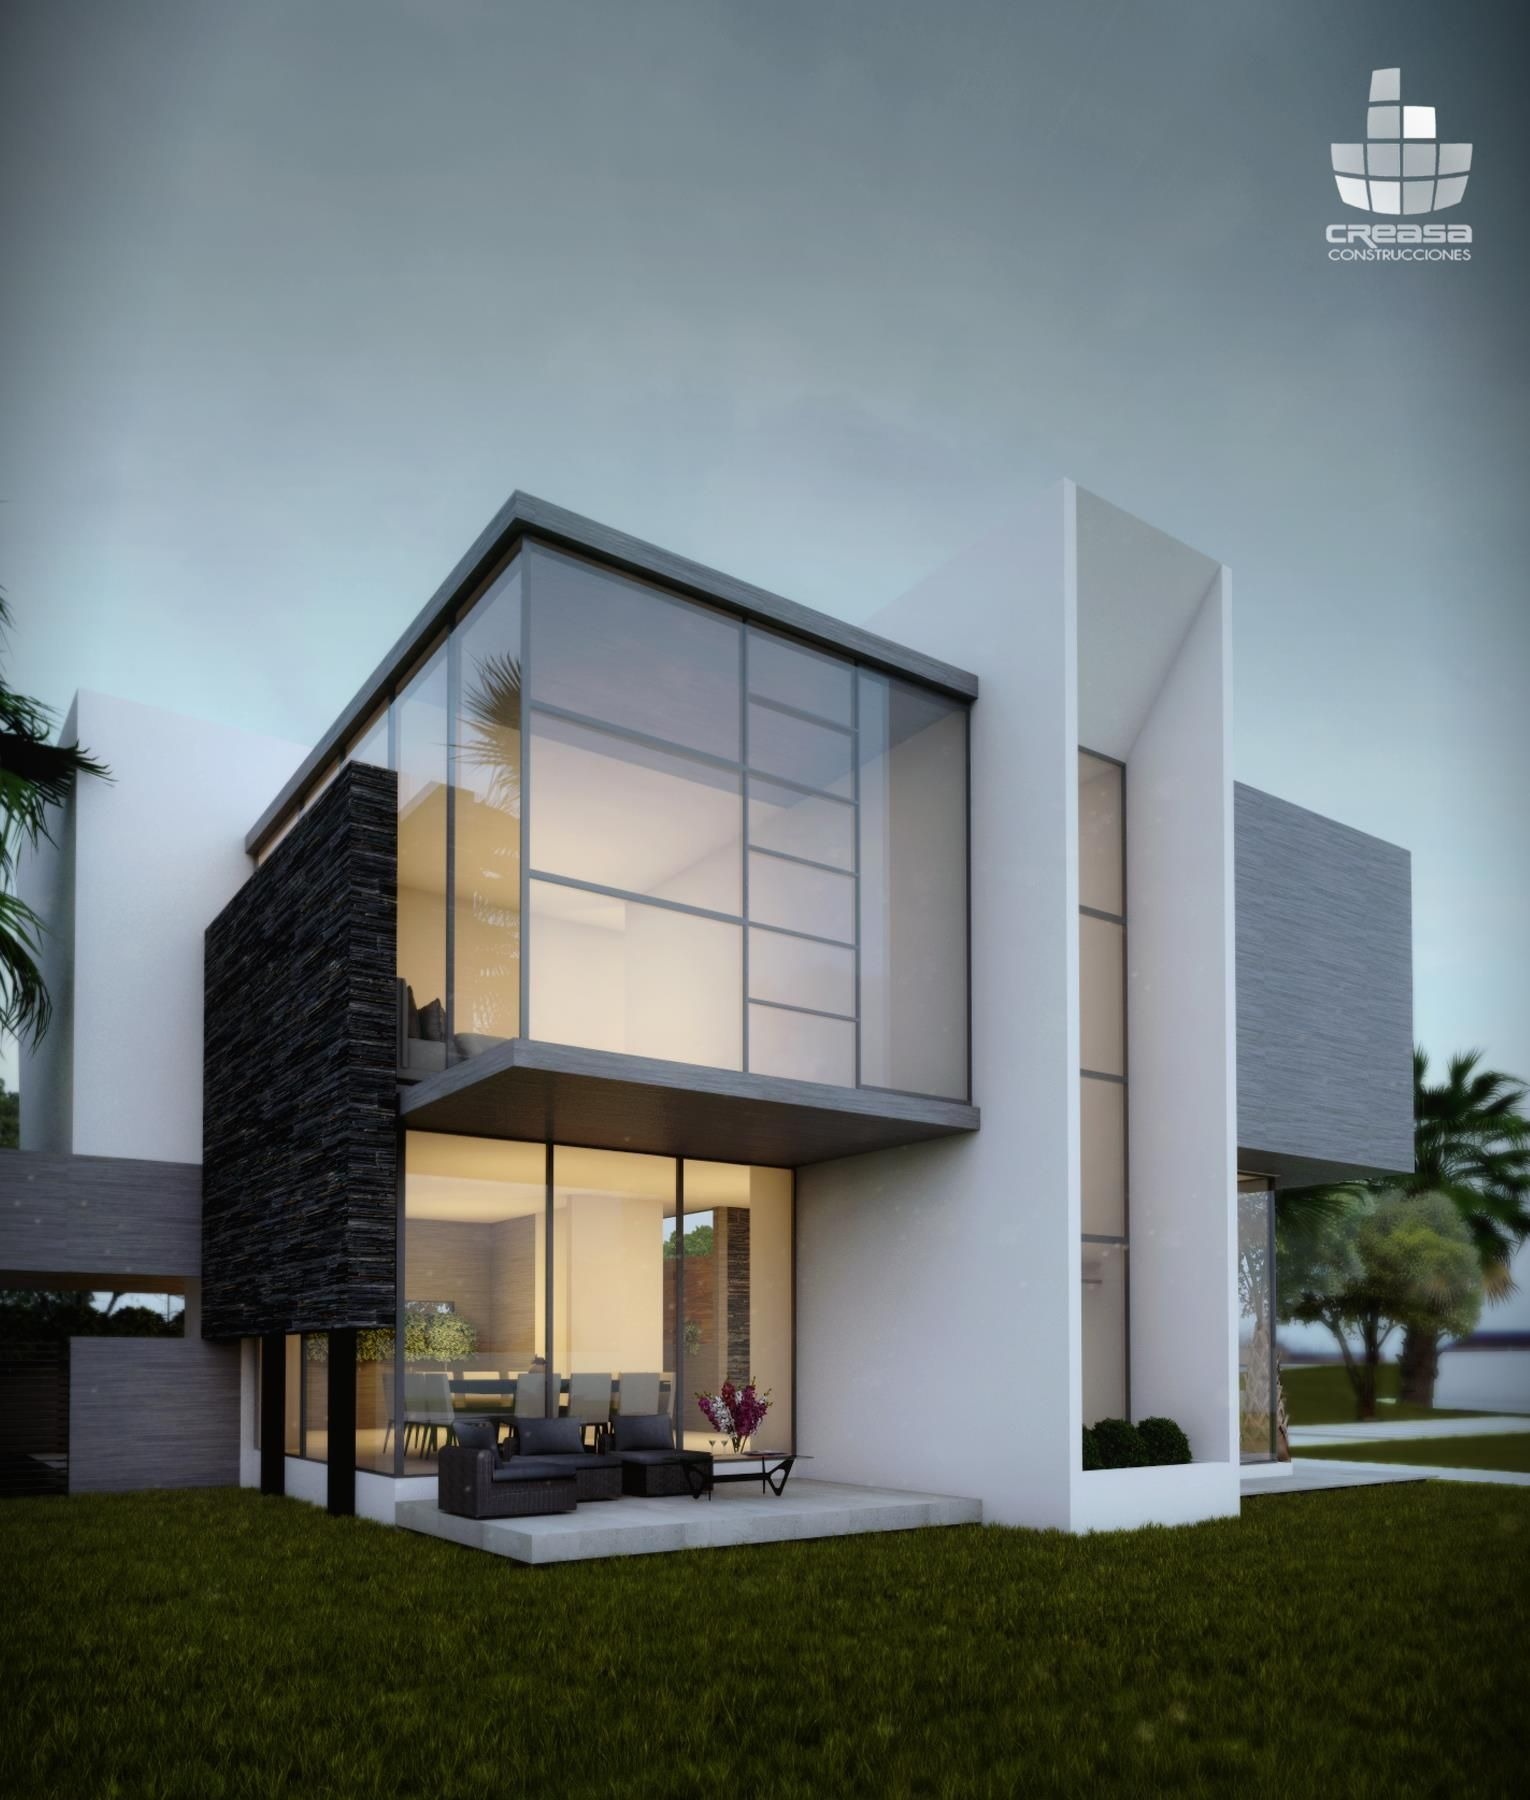 Creasa modern architecture pinterest villas house for Villa architecture design plans